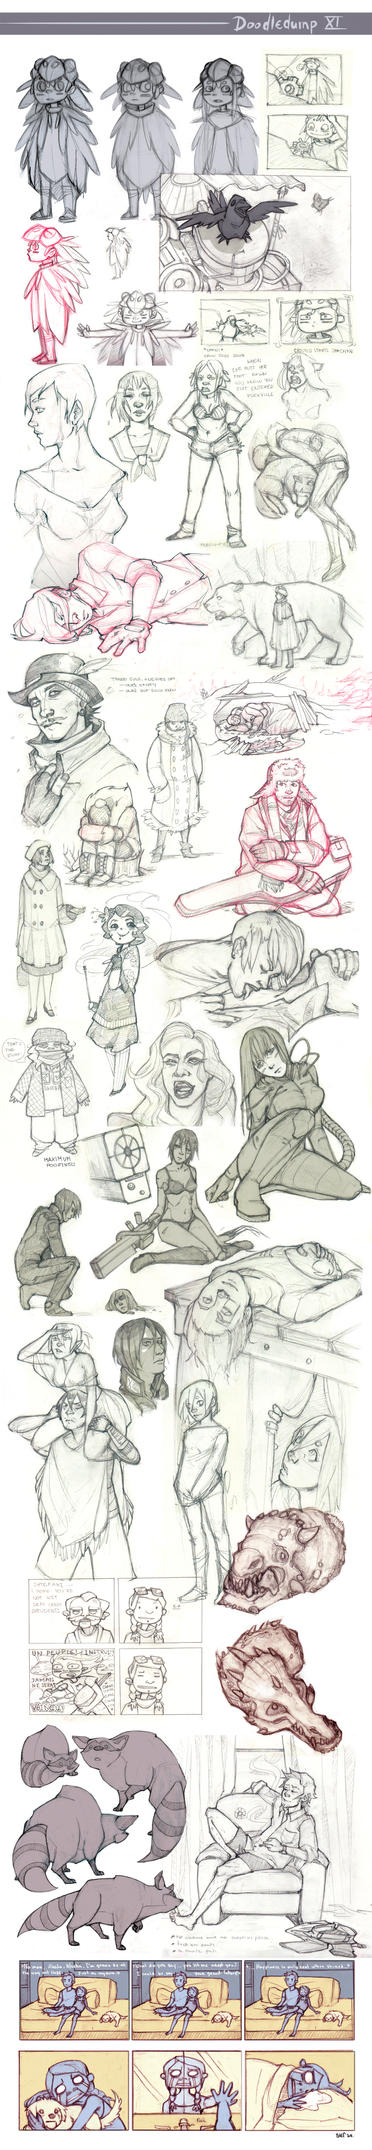 Doodledump XI by frizz-bee